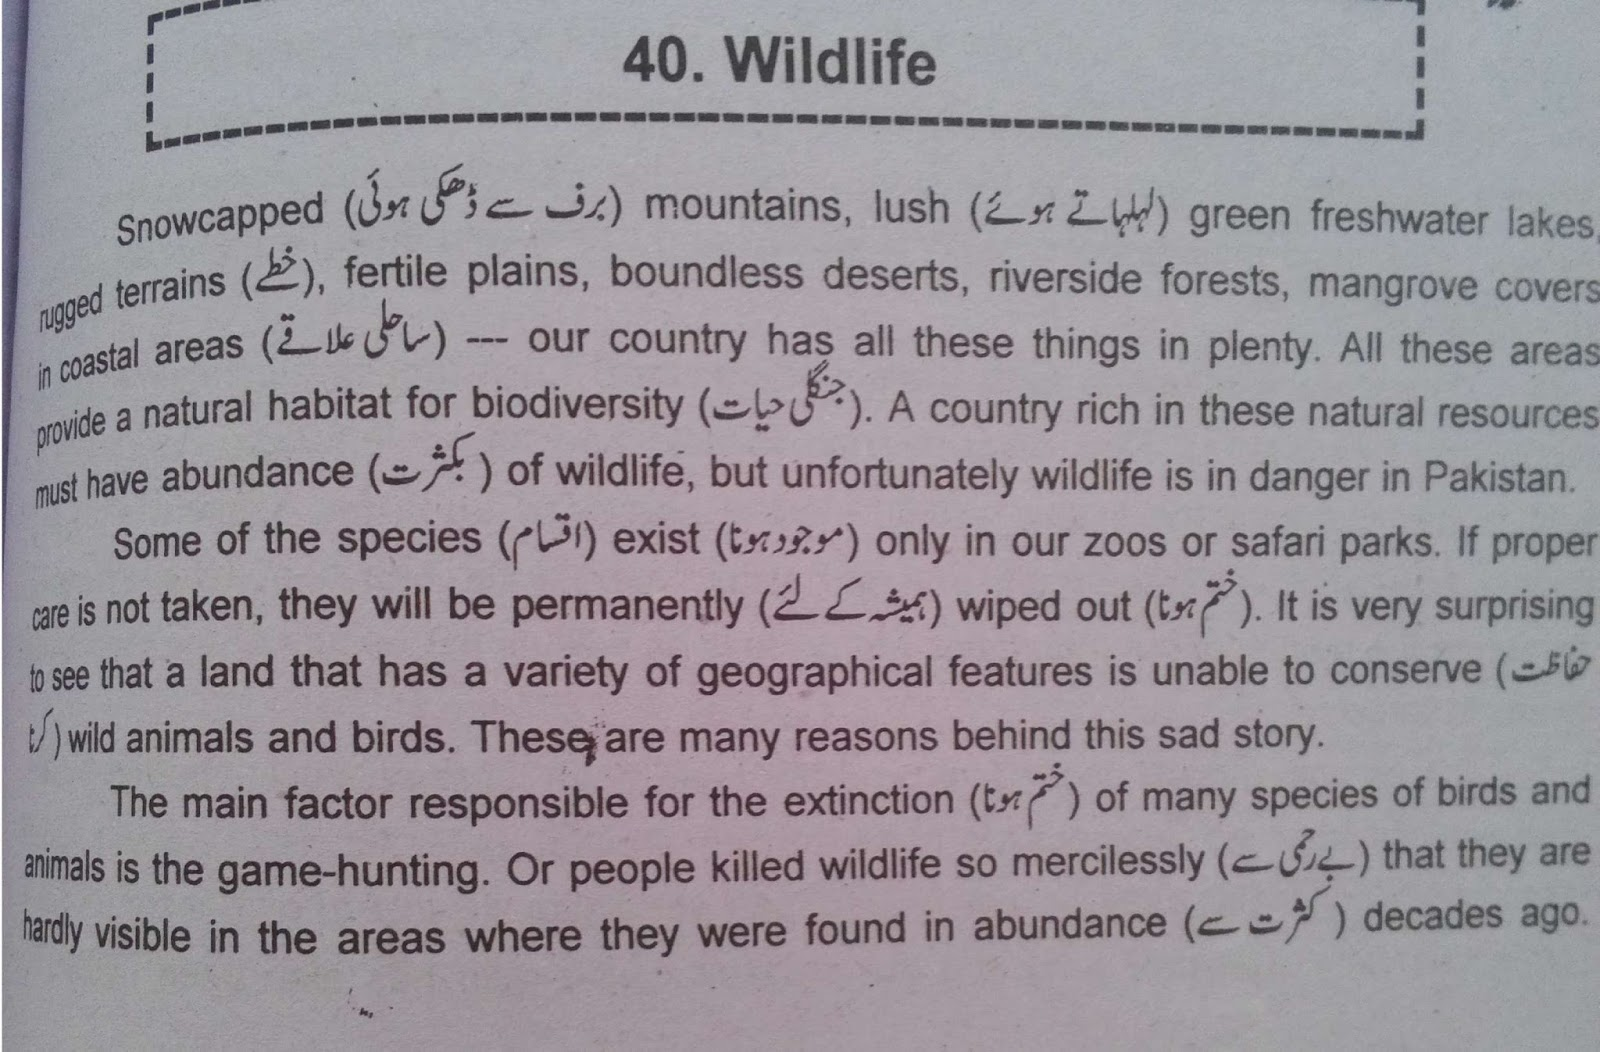 wild life conservation essay wild life essay in english for  wild life essay in english for primary to higher classes 2017 essay on save wildlife 150